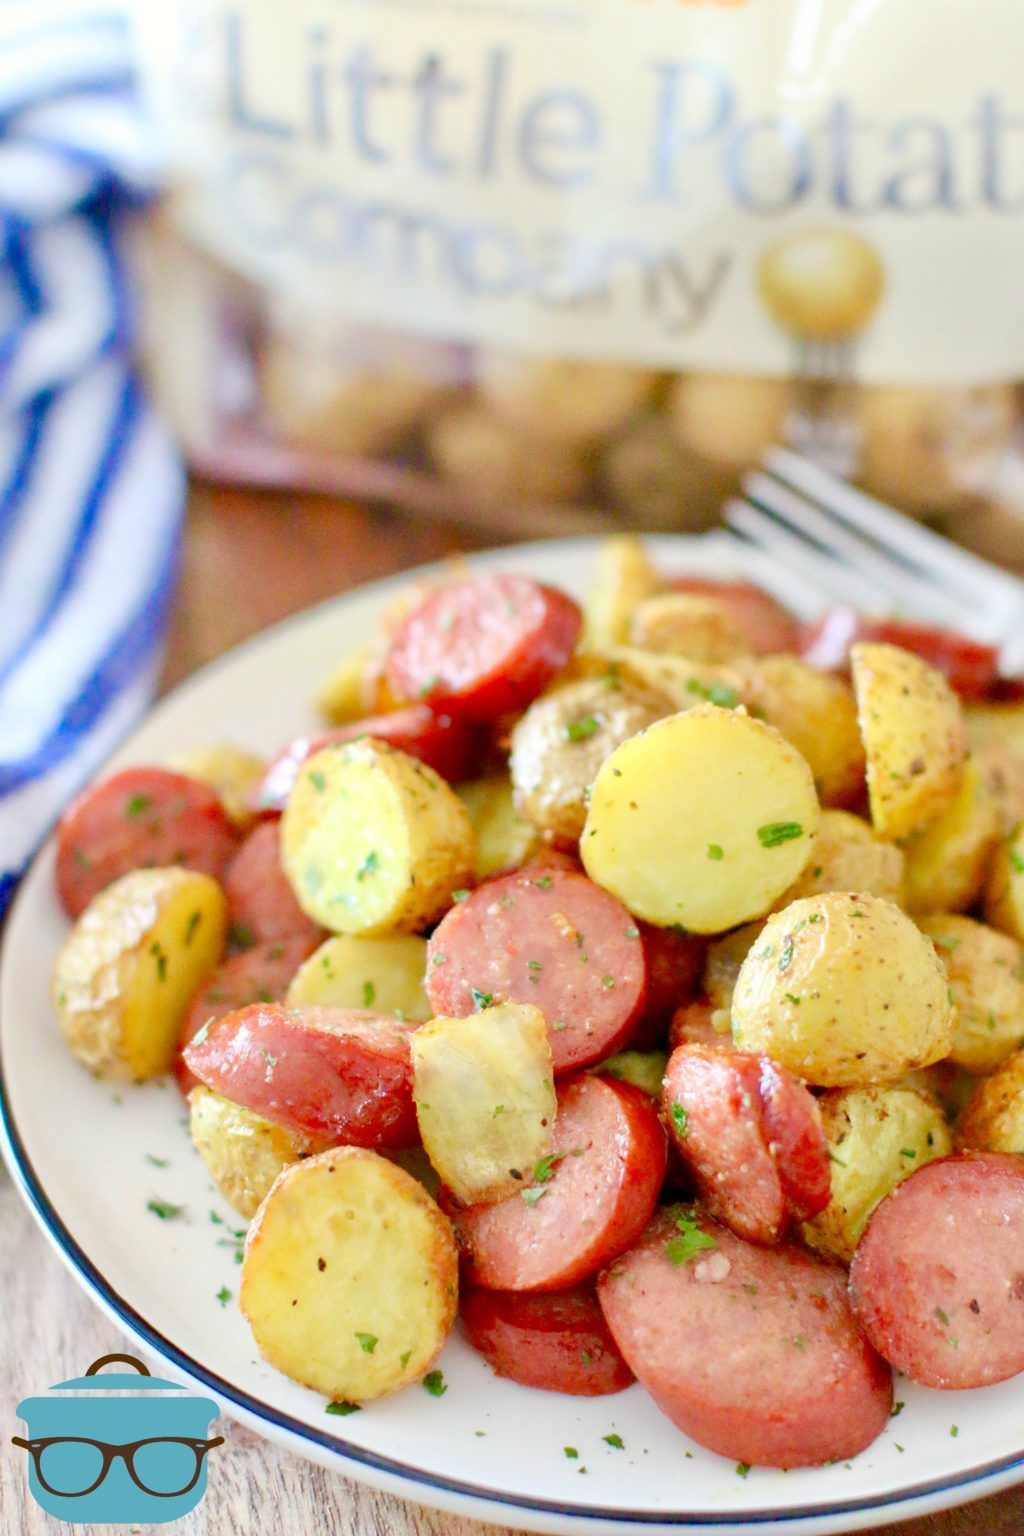 Air fryer potatoes and sausage meal Recipe Sausage